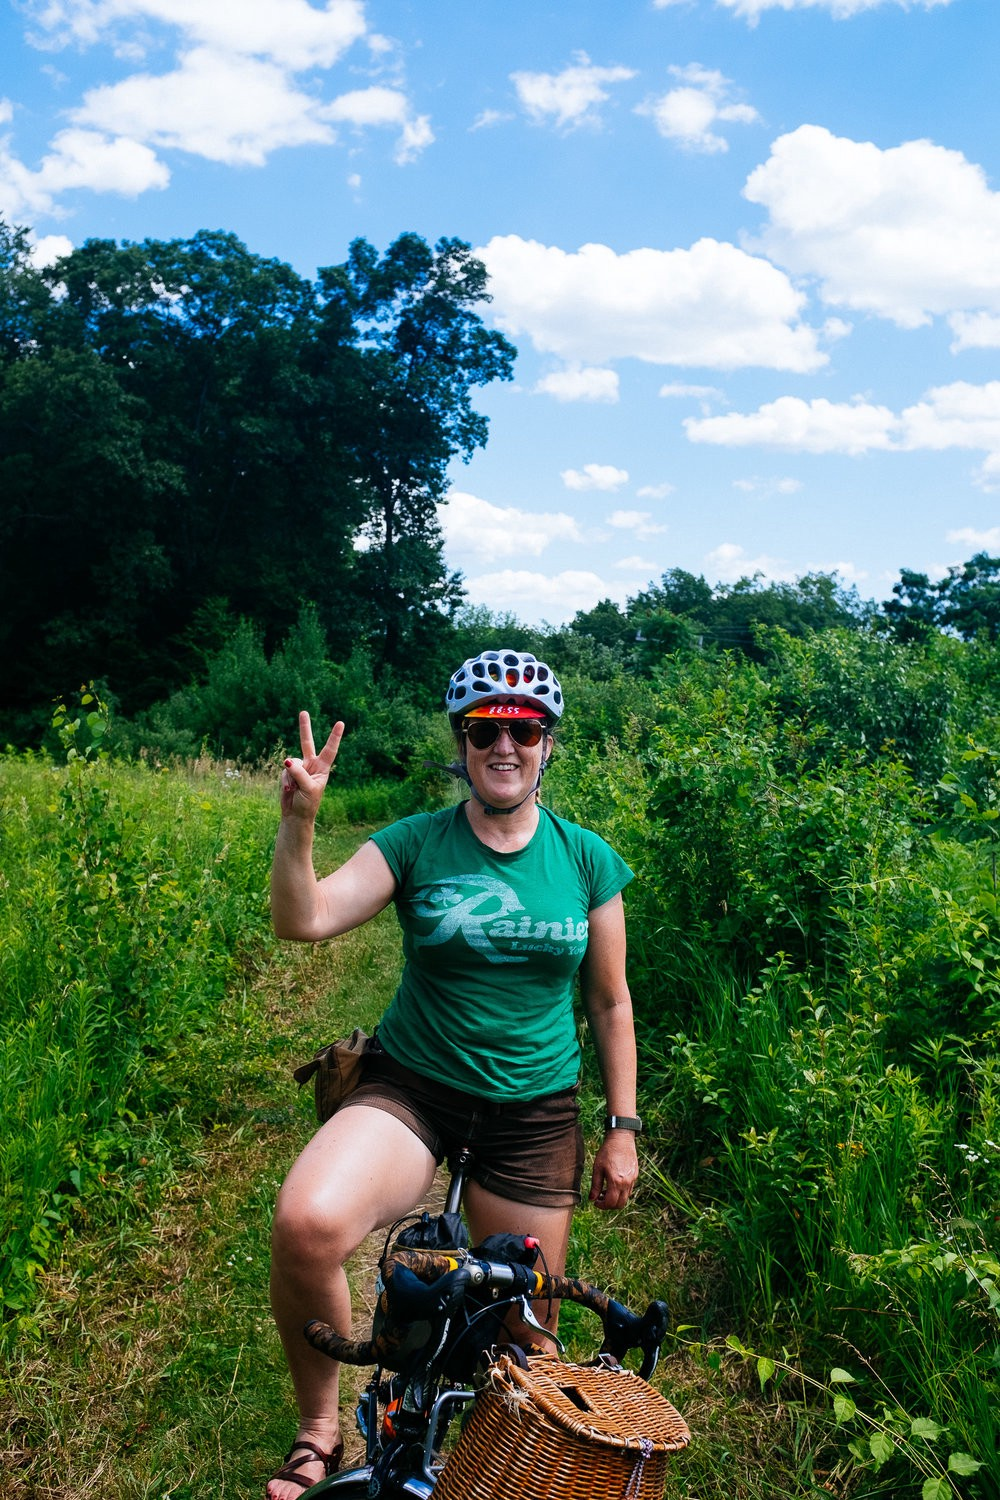 Me actually having fun on a trail on my bike. Maybe it's just the love I have for my hubby.